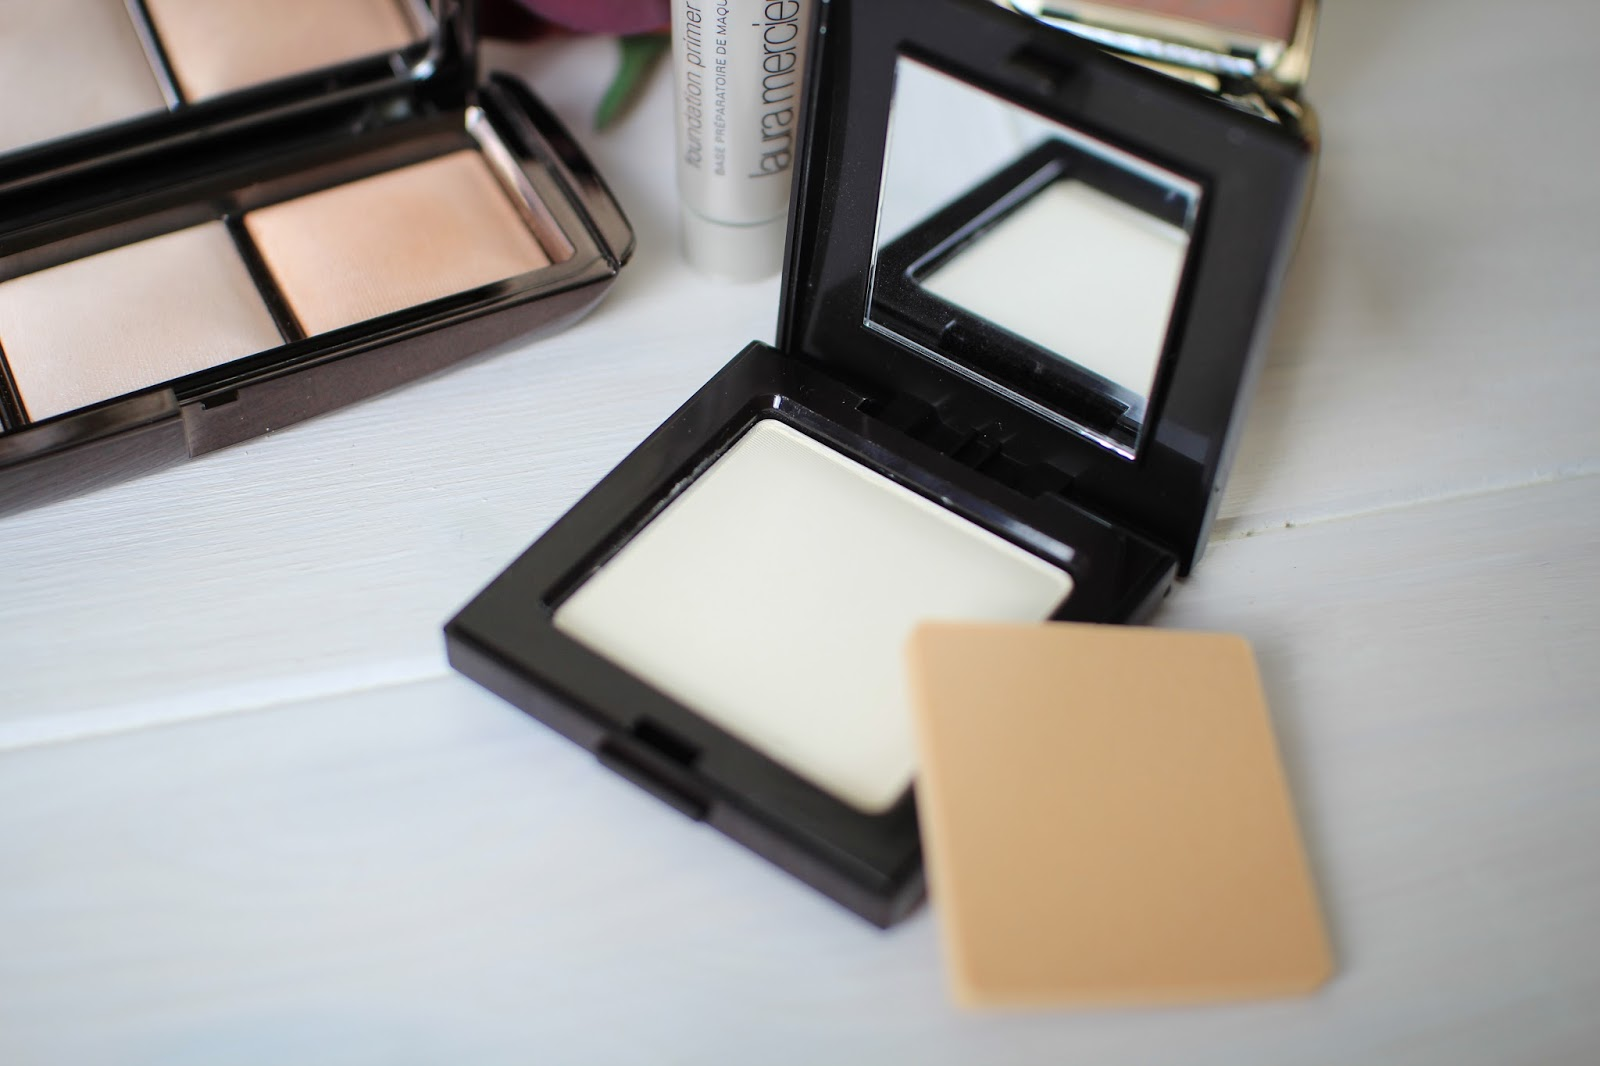 Laura Mercier Pressed Powder in translucent